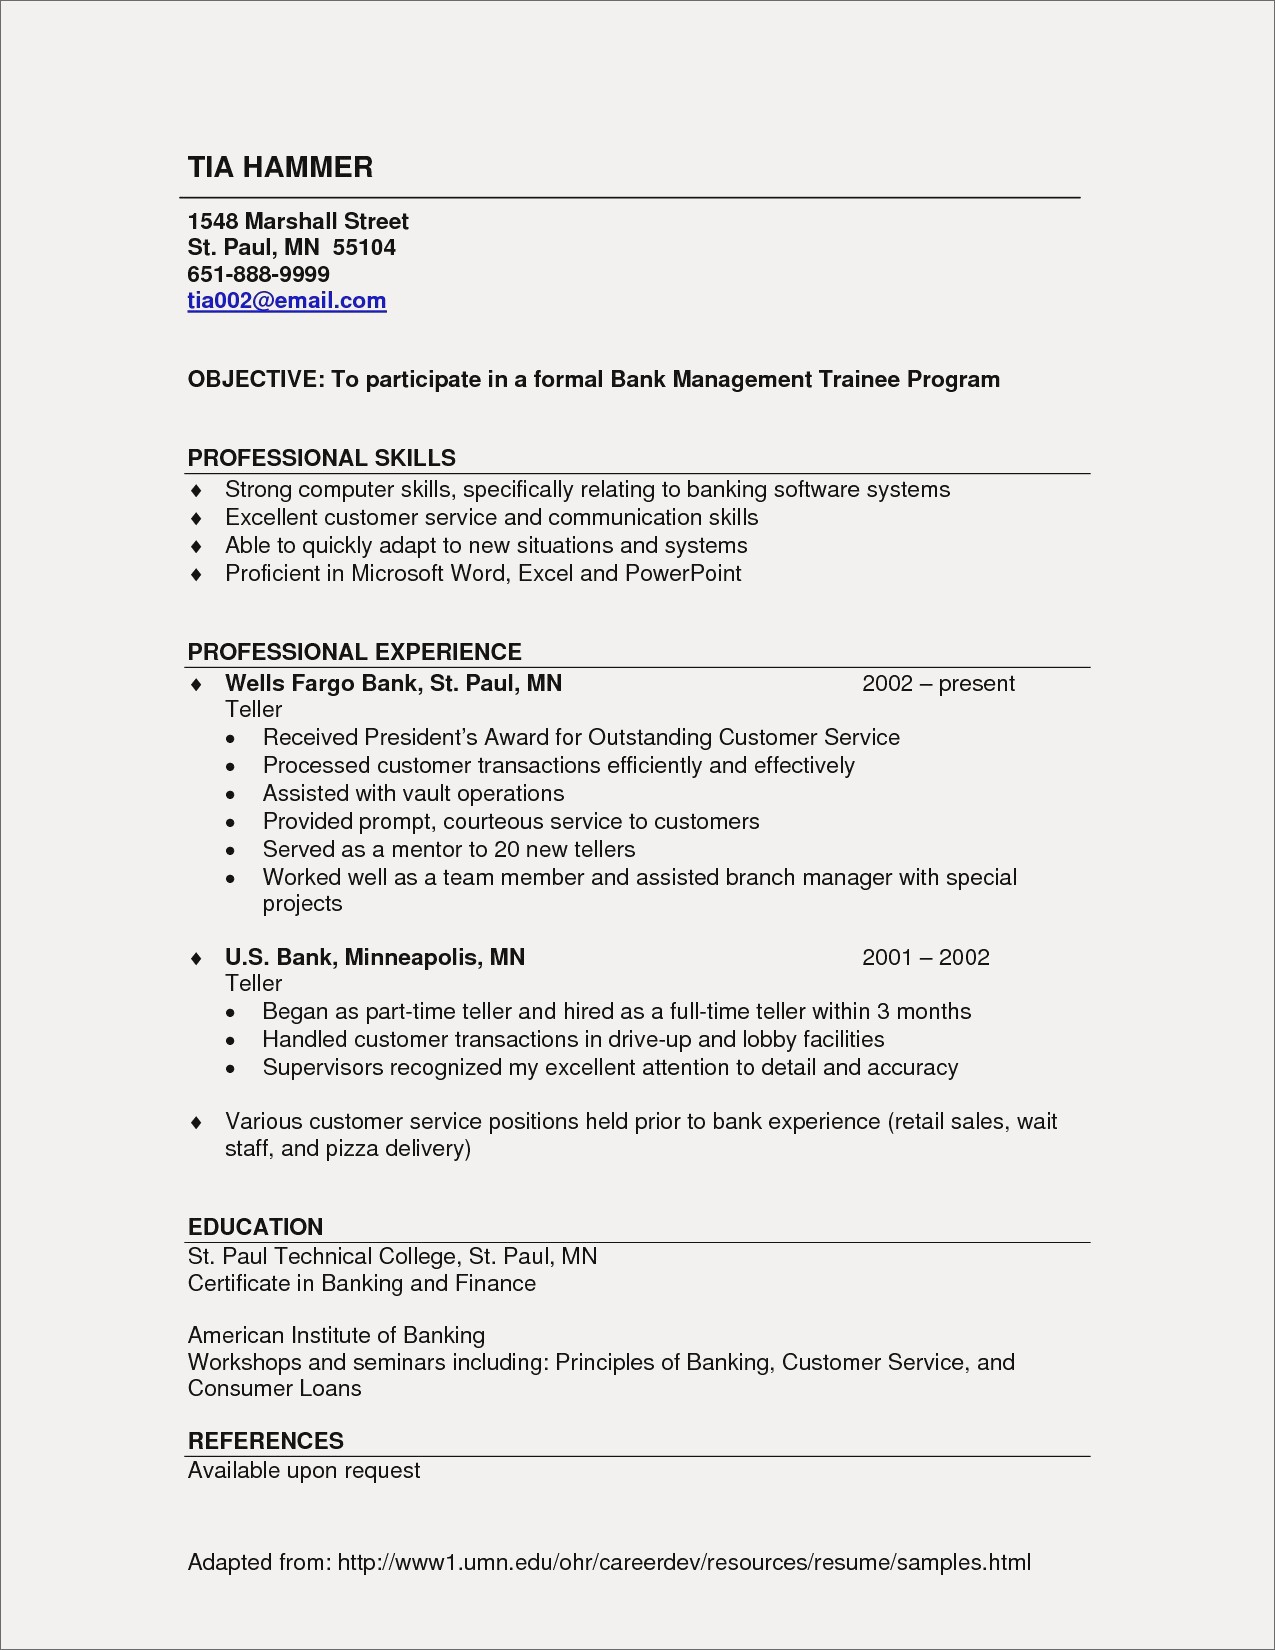 Customer Service Resume - Resume Templates for Customer Service Best Customer Service Resume